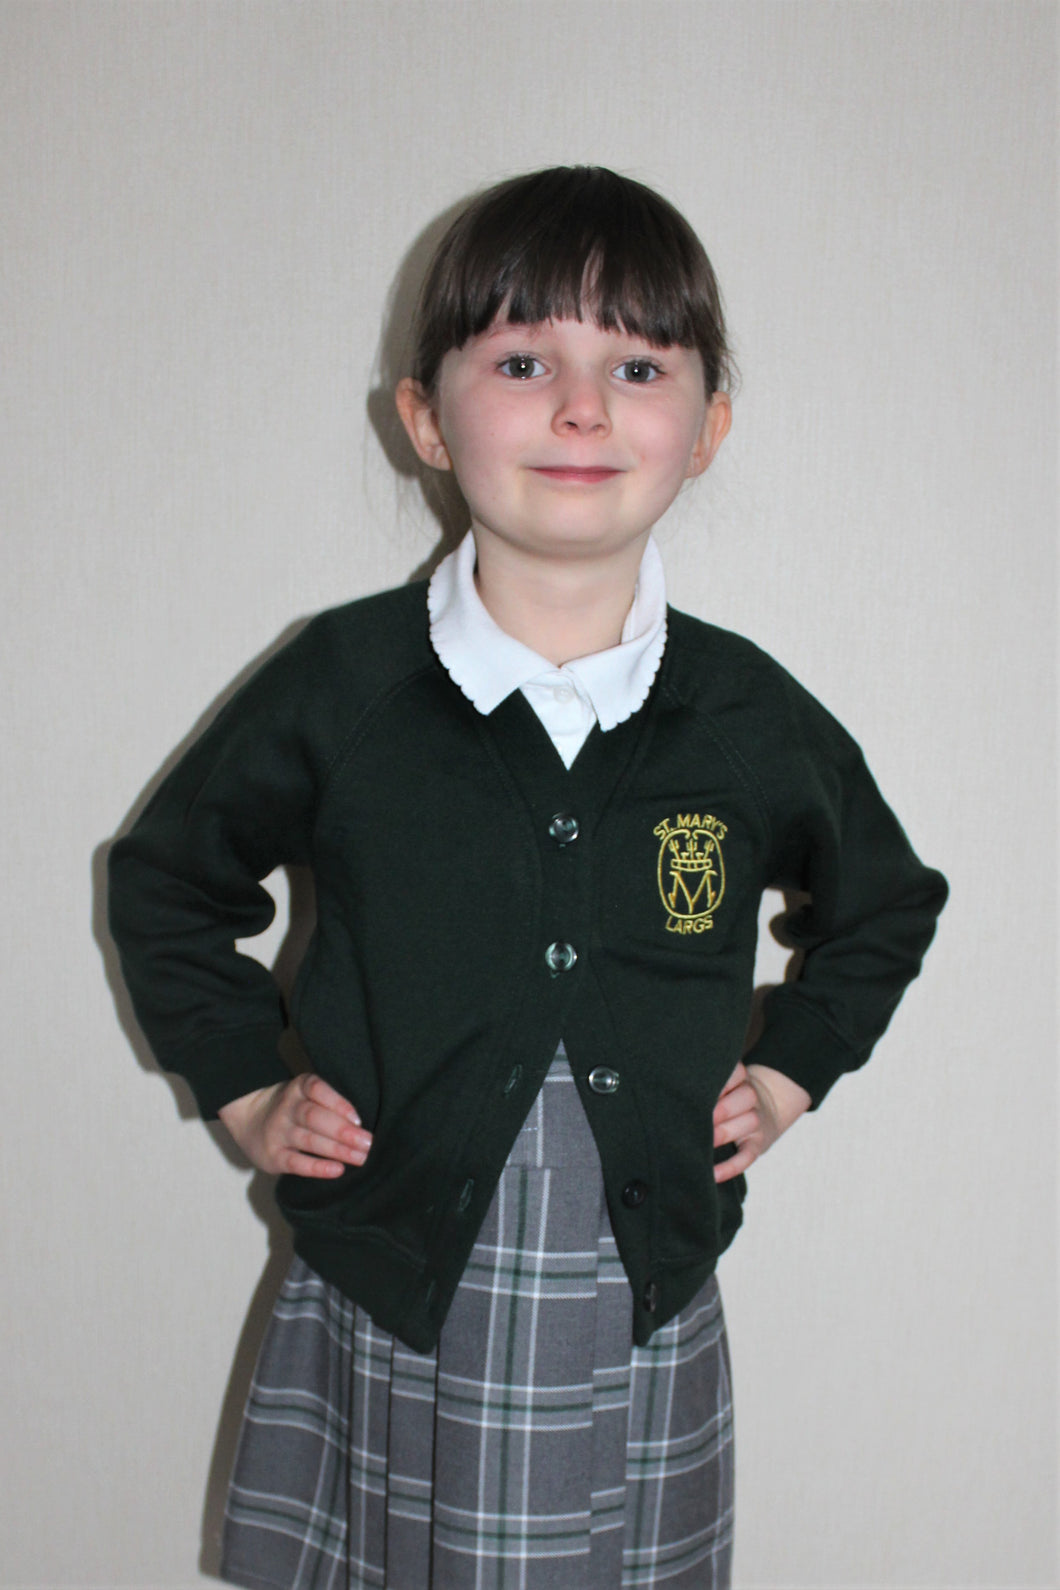 Girls Cardigan, part of St Mary's Primary School Uniform, Largs, dark green, embroidered with logo, affordable and long lasting